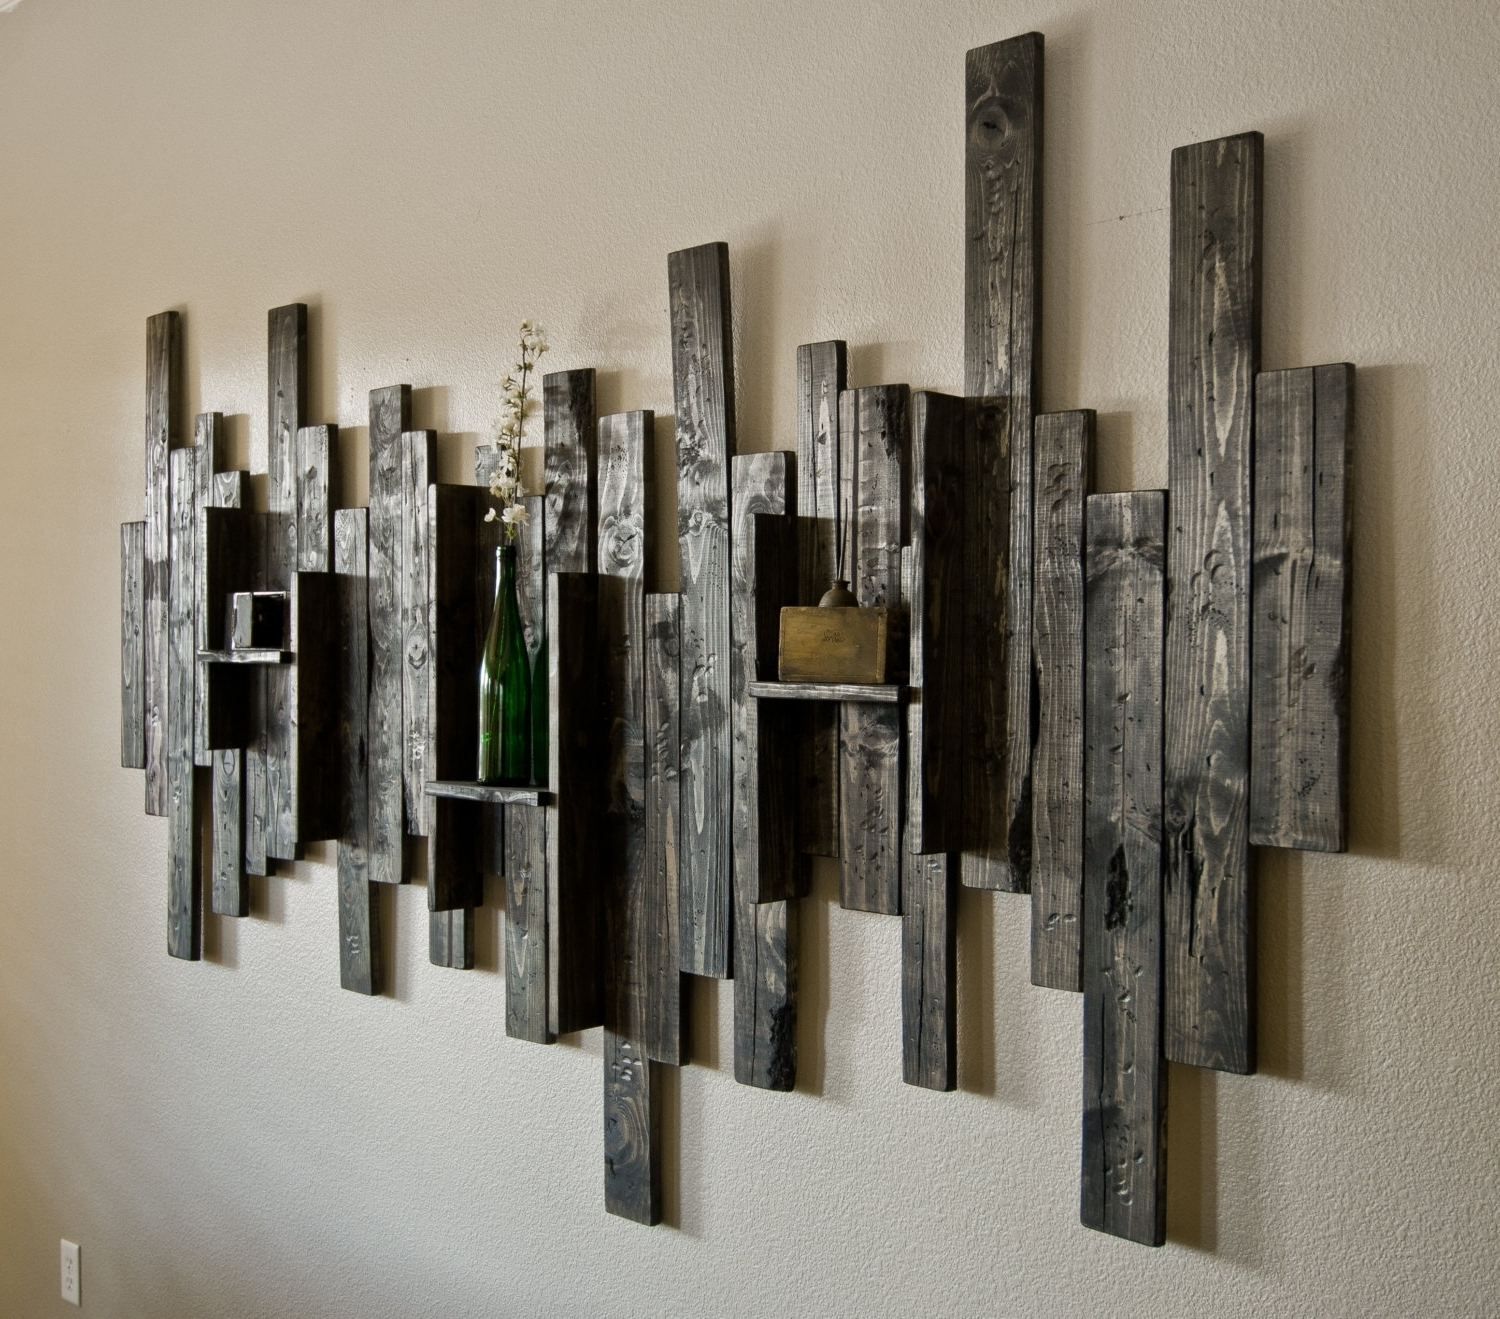 Wood And Metal Wall Art Inside 2018 Wood Metal Wall Art Stylist Design Ideas Large Wooden Wall Art With (Gallery 13 of 20)